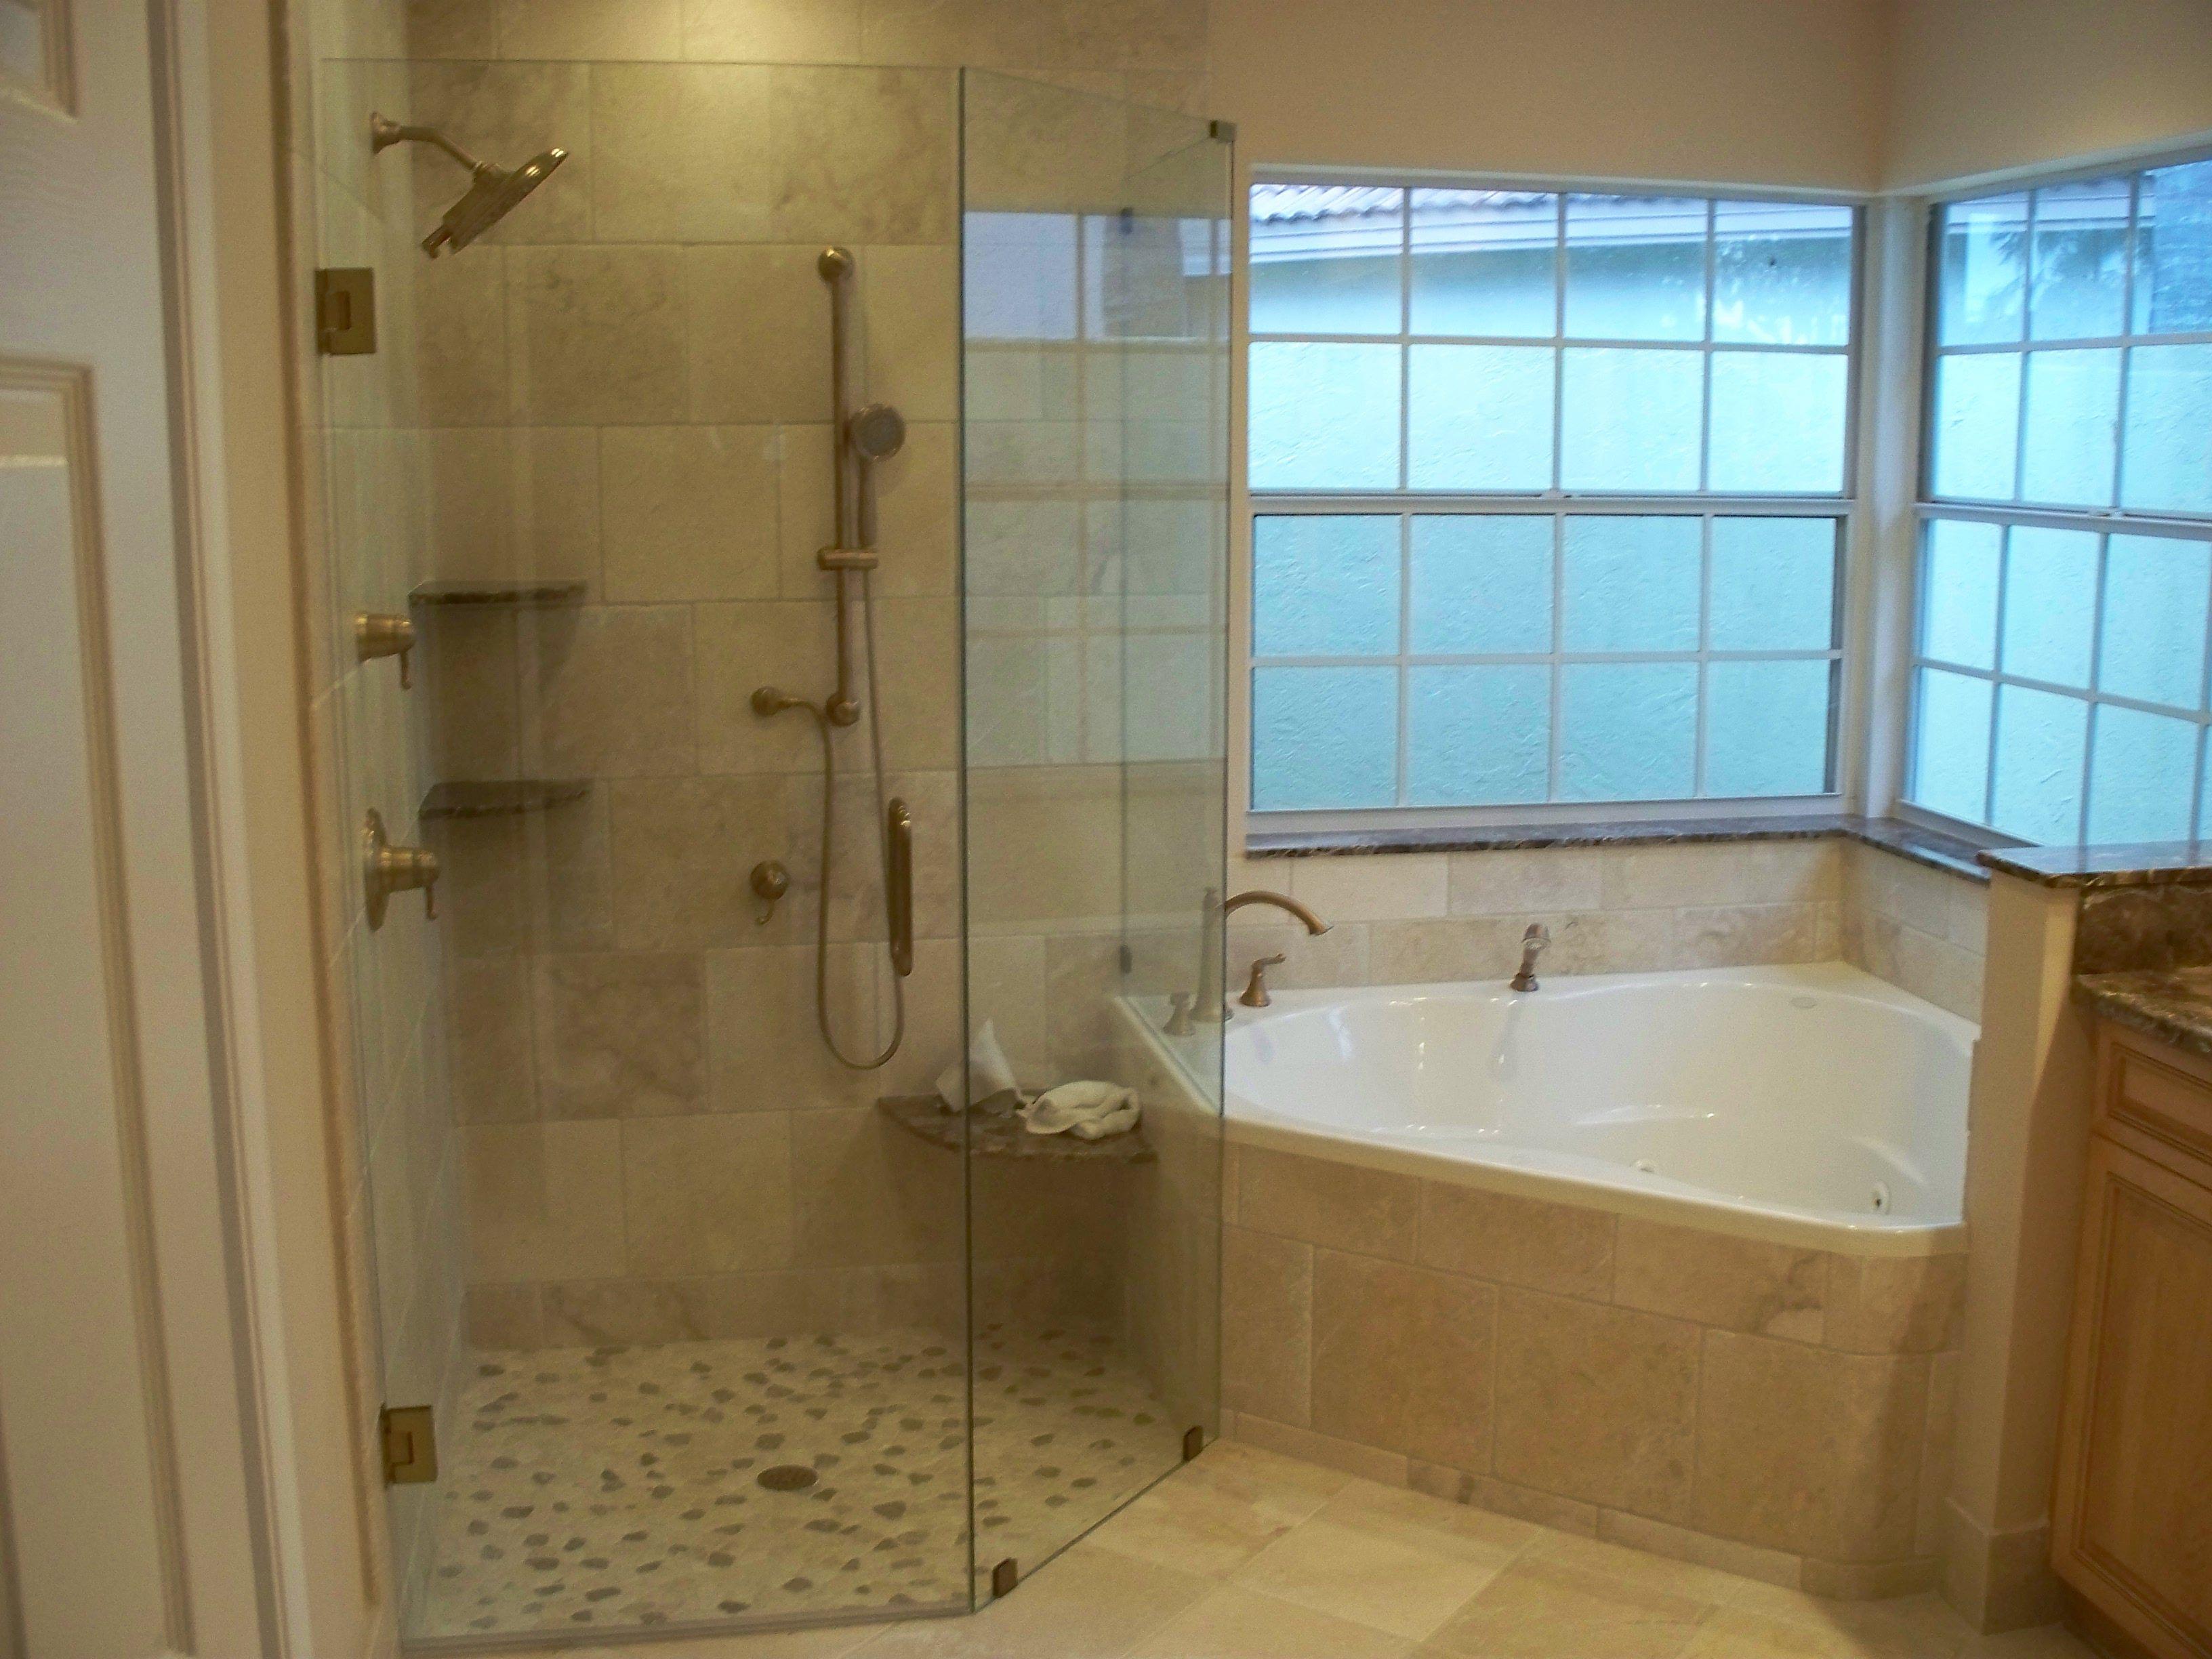 Corner tub w larger walk in shower do not like the wall next to vanity tub seems closed in - Bathroom designs with jacuzzi tub ...